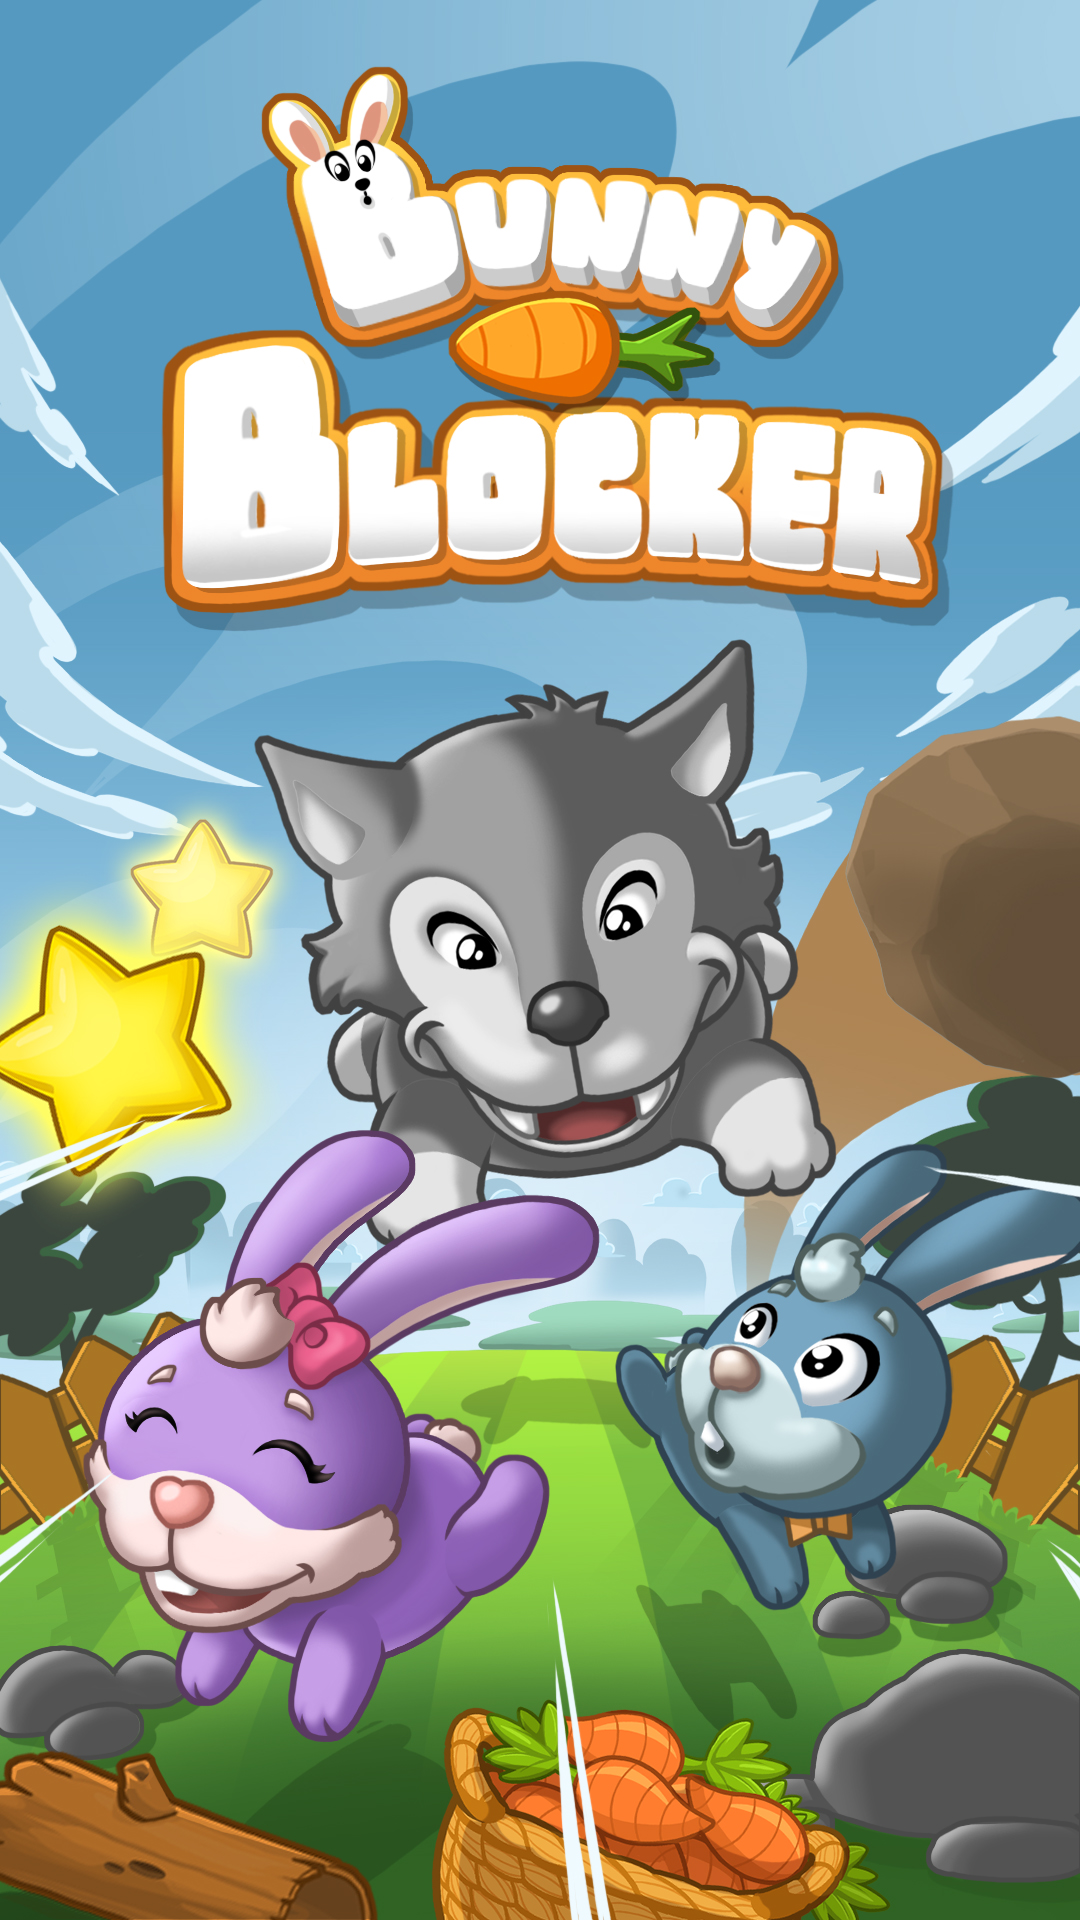 bunny_blocker_splash_screen.jpg